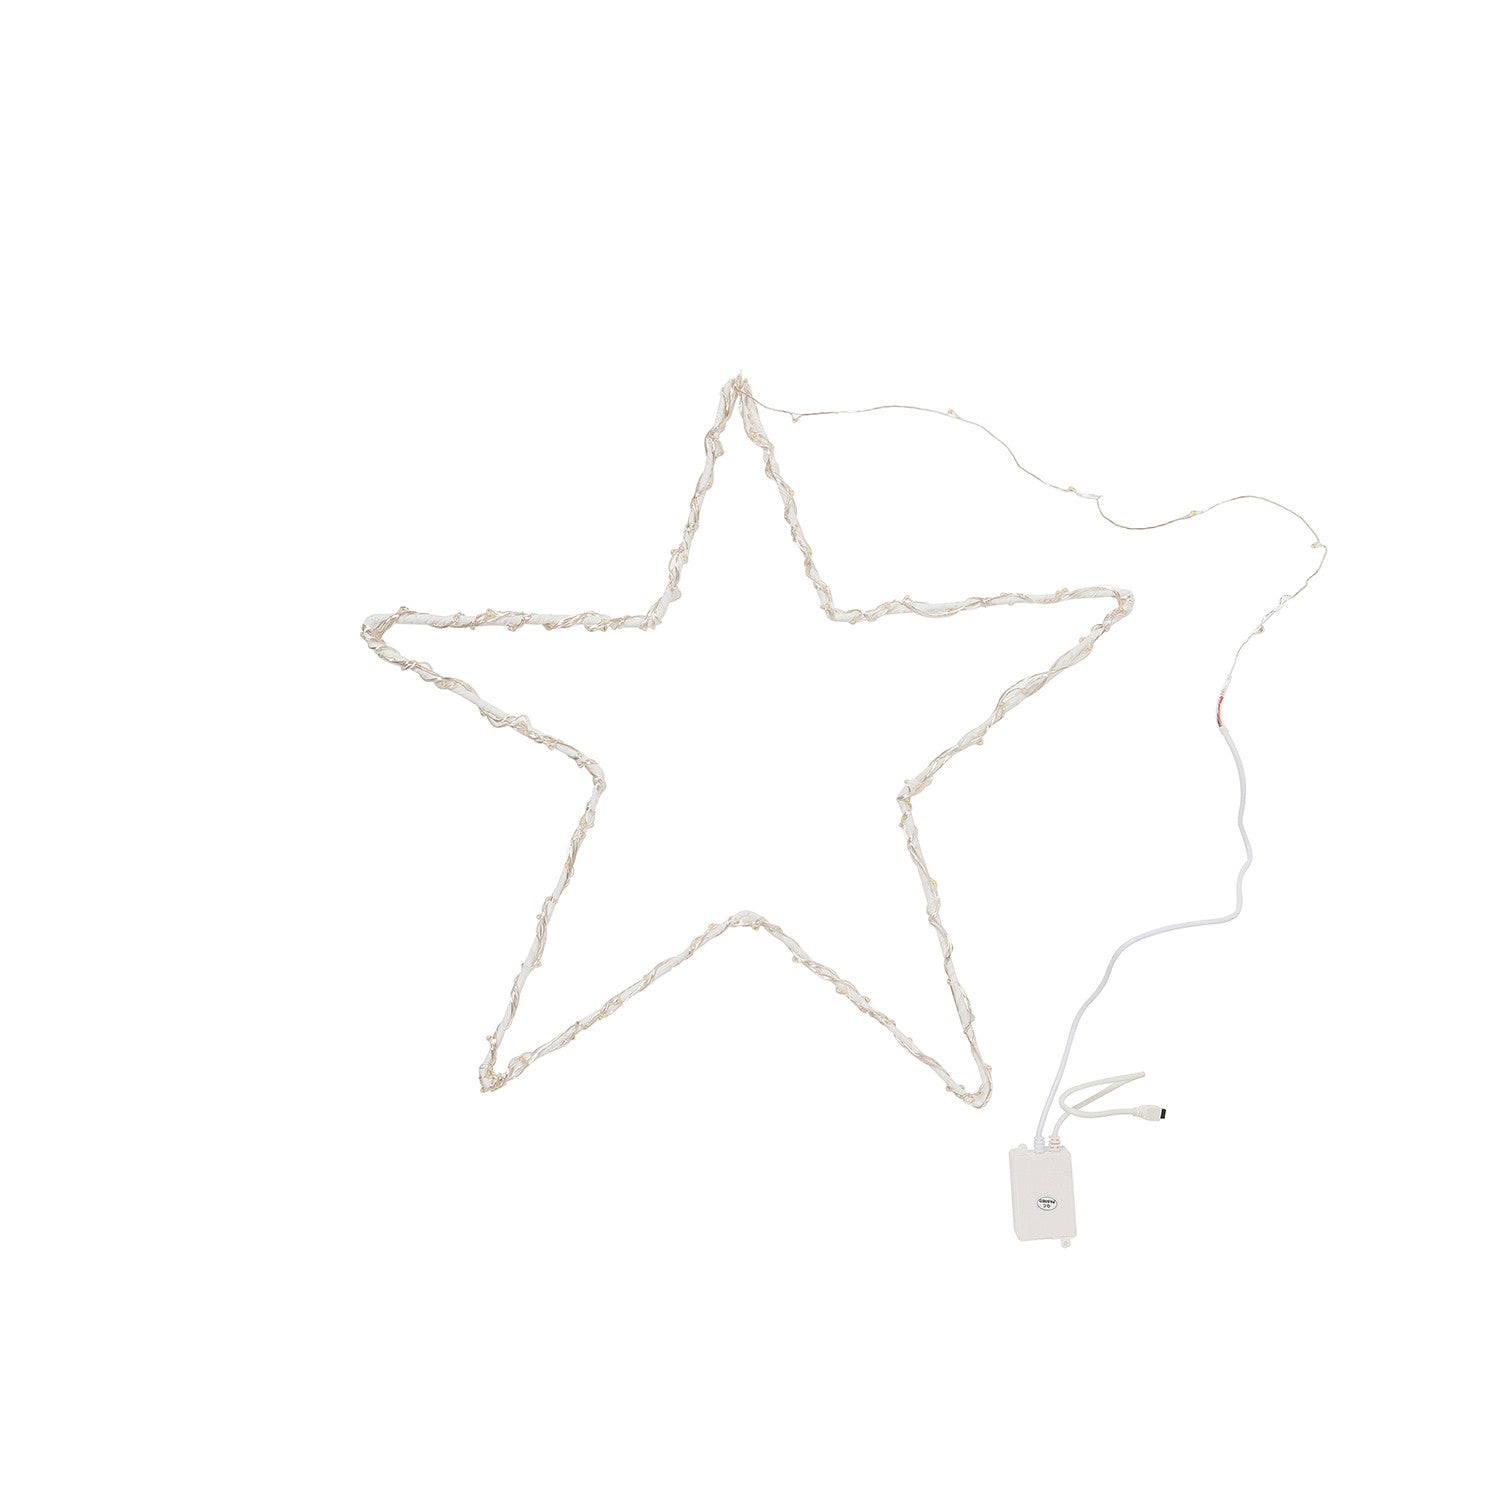 Bene Bene Twinkle Star Lighting One Size - Ladida